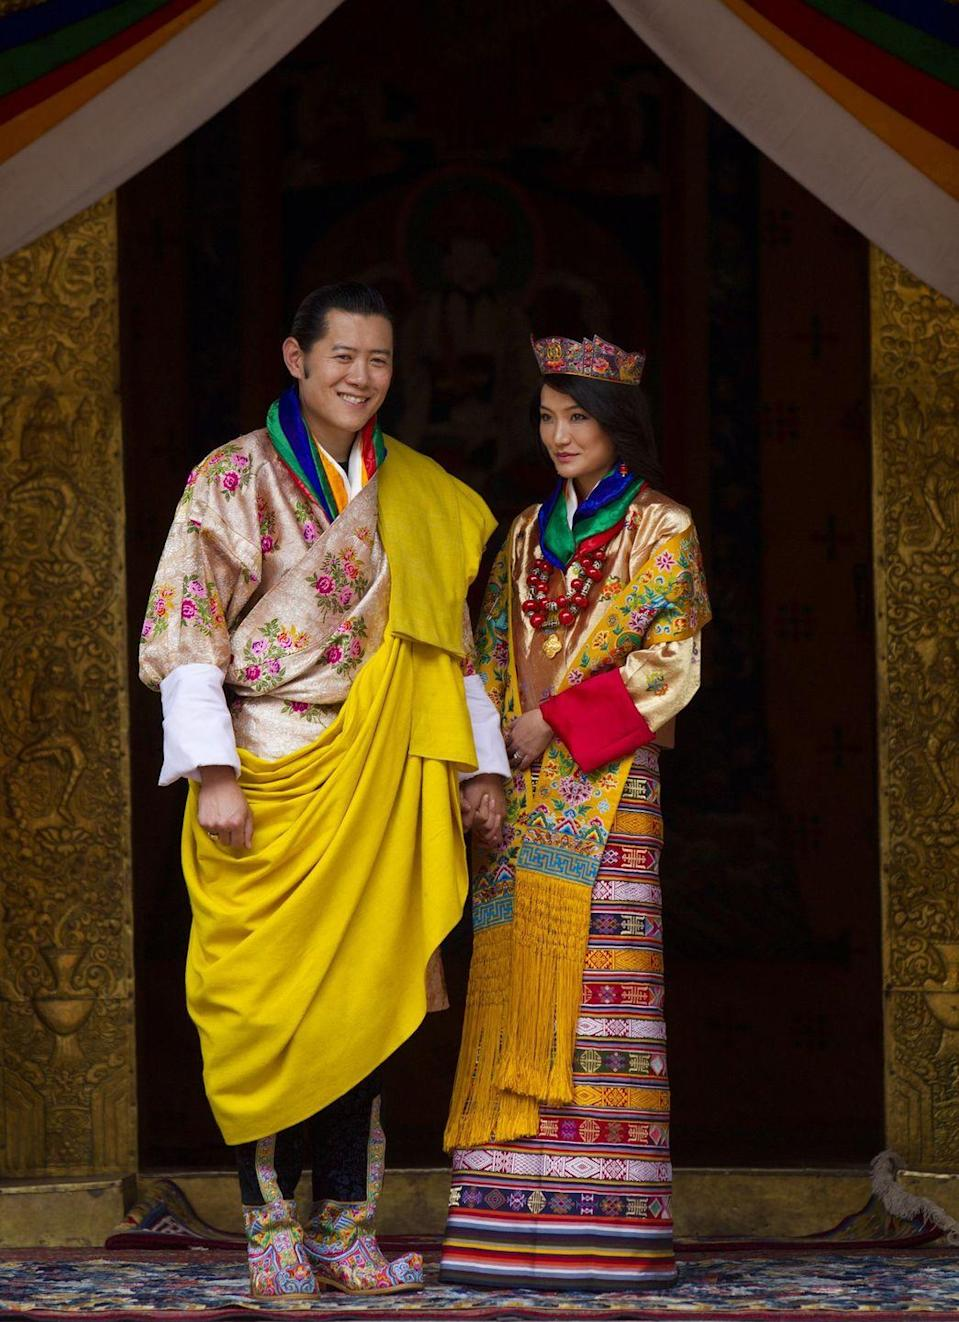 "<p>The prince of Bhutan met Jetsun when she was 7 years old and he was 17, at a family picnic. <a href=""http://www.executivestyle.com.au/the-commoners-who-marry-into-royalty-39imb"" rel=""nofollow noopener"" target=""_blank"" data-ylk=""slk:According to reports"" class=""link rapid-noclick-resp"">According to reports</a>, he told her that if they were both still single as adults that they would marry. He kept his promise; on October 13, 2011, the couple married in a traditional Buddhist ceremony. </p>"